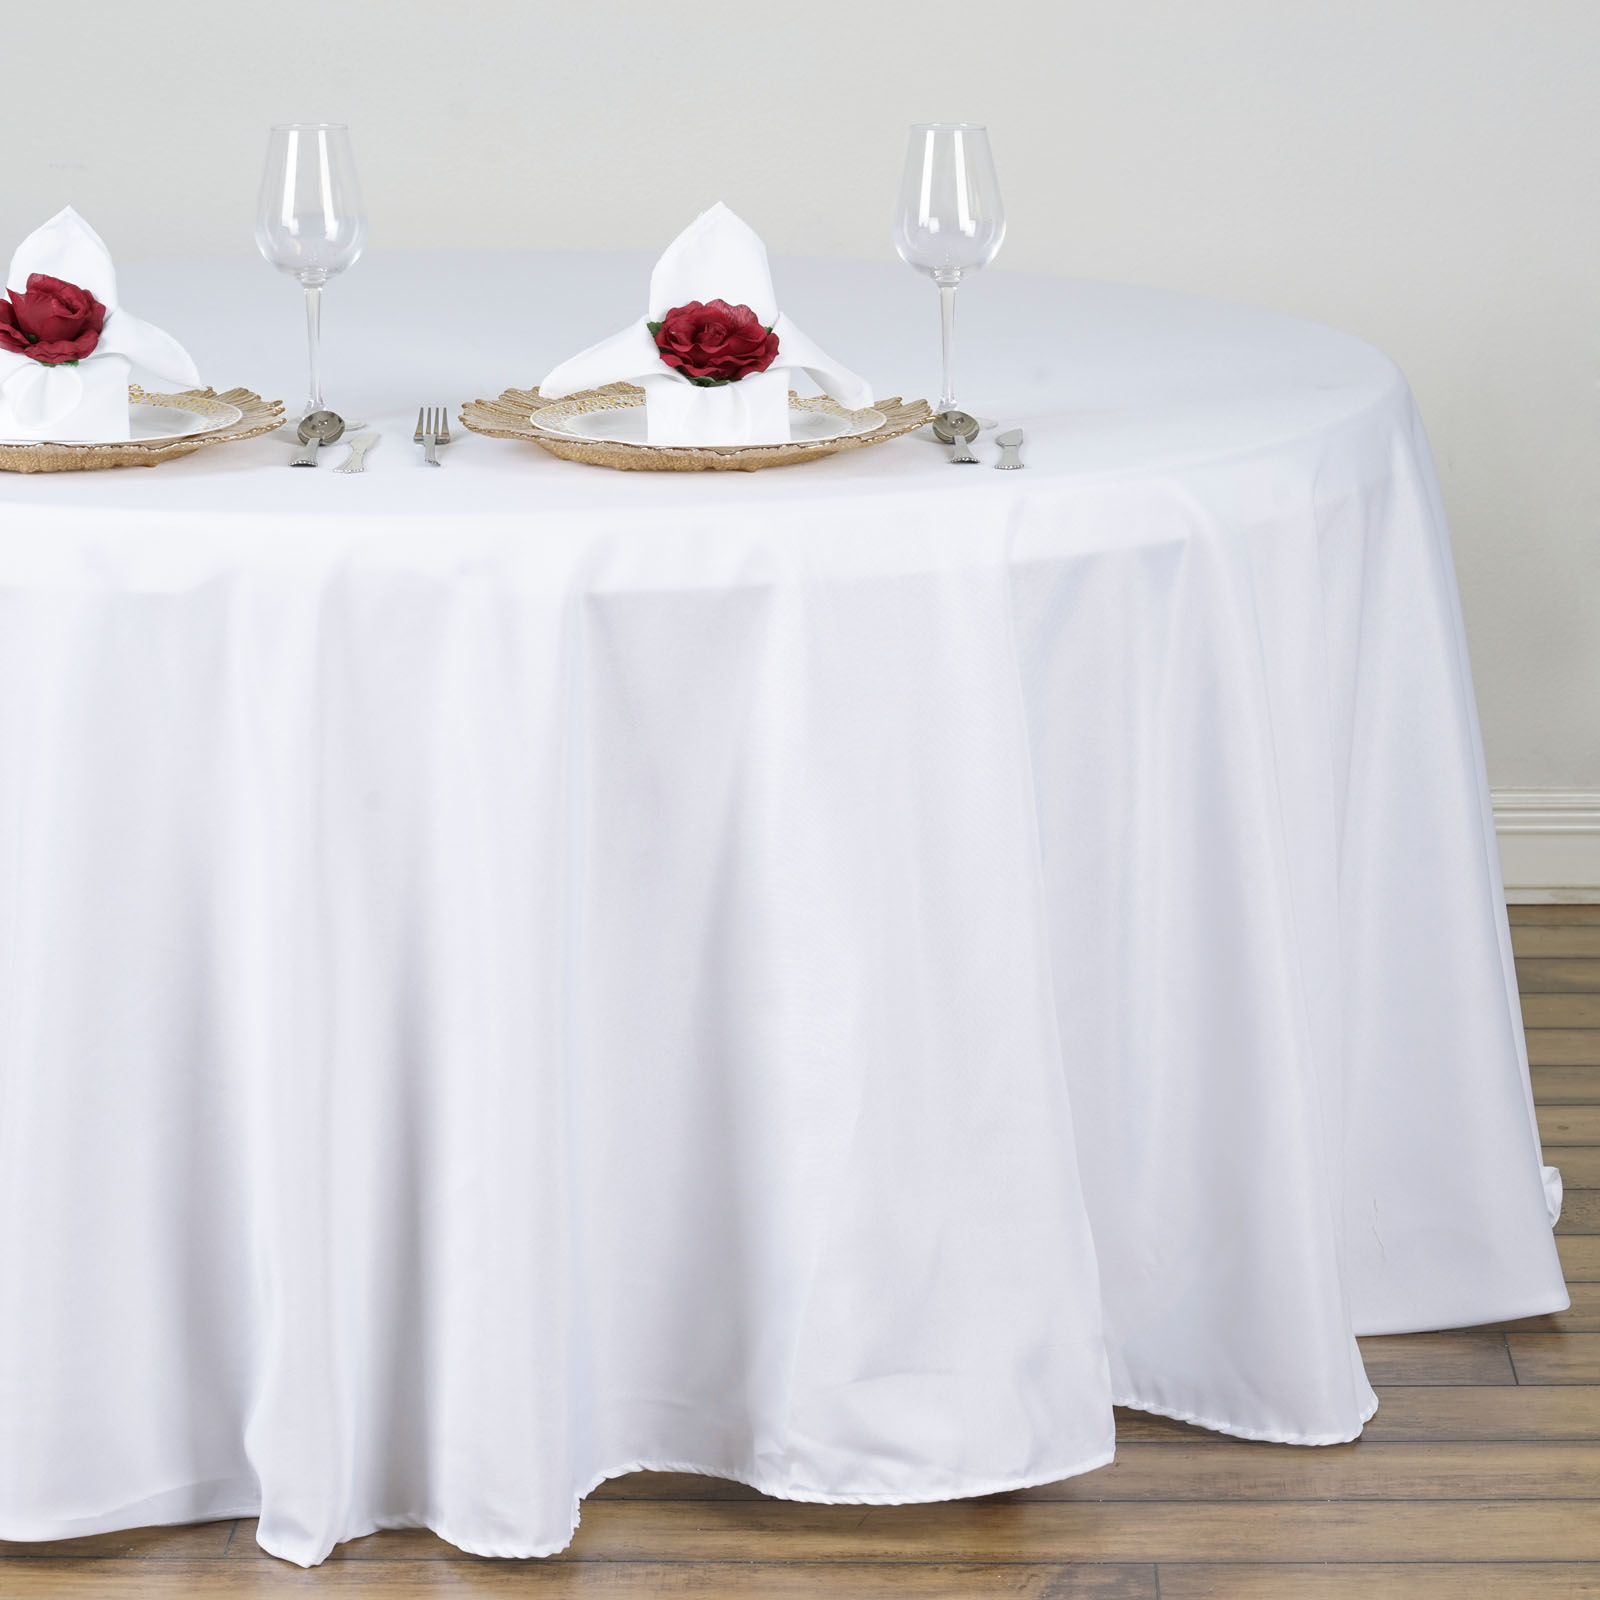 132 Quot Round Polyester Tablecloths For Wedding Party Linens